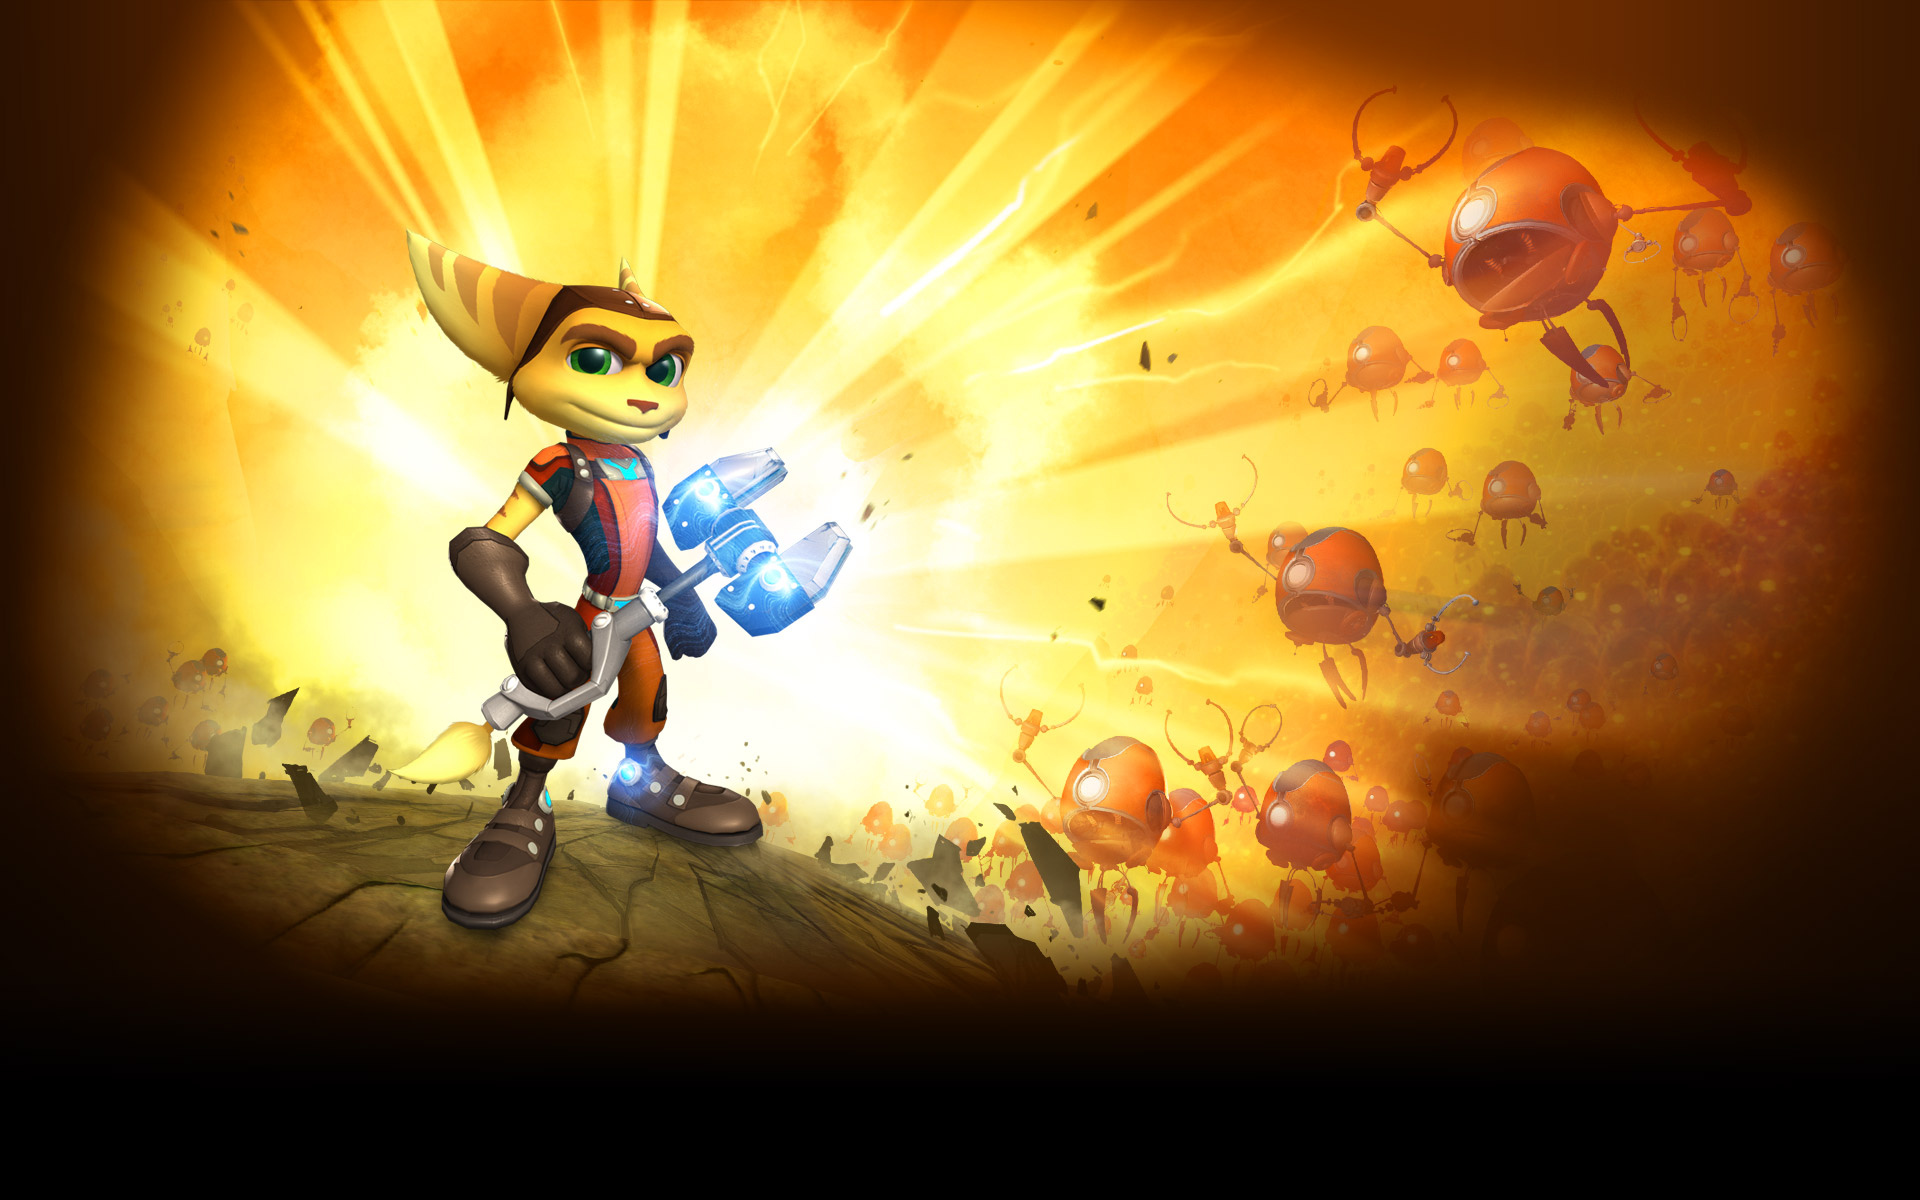 Ratchet Clank Wallpaper Posted By Ethan Thompson